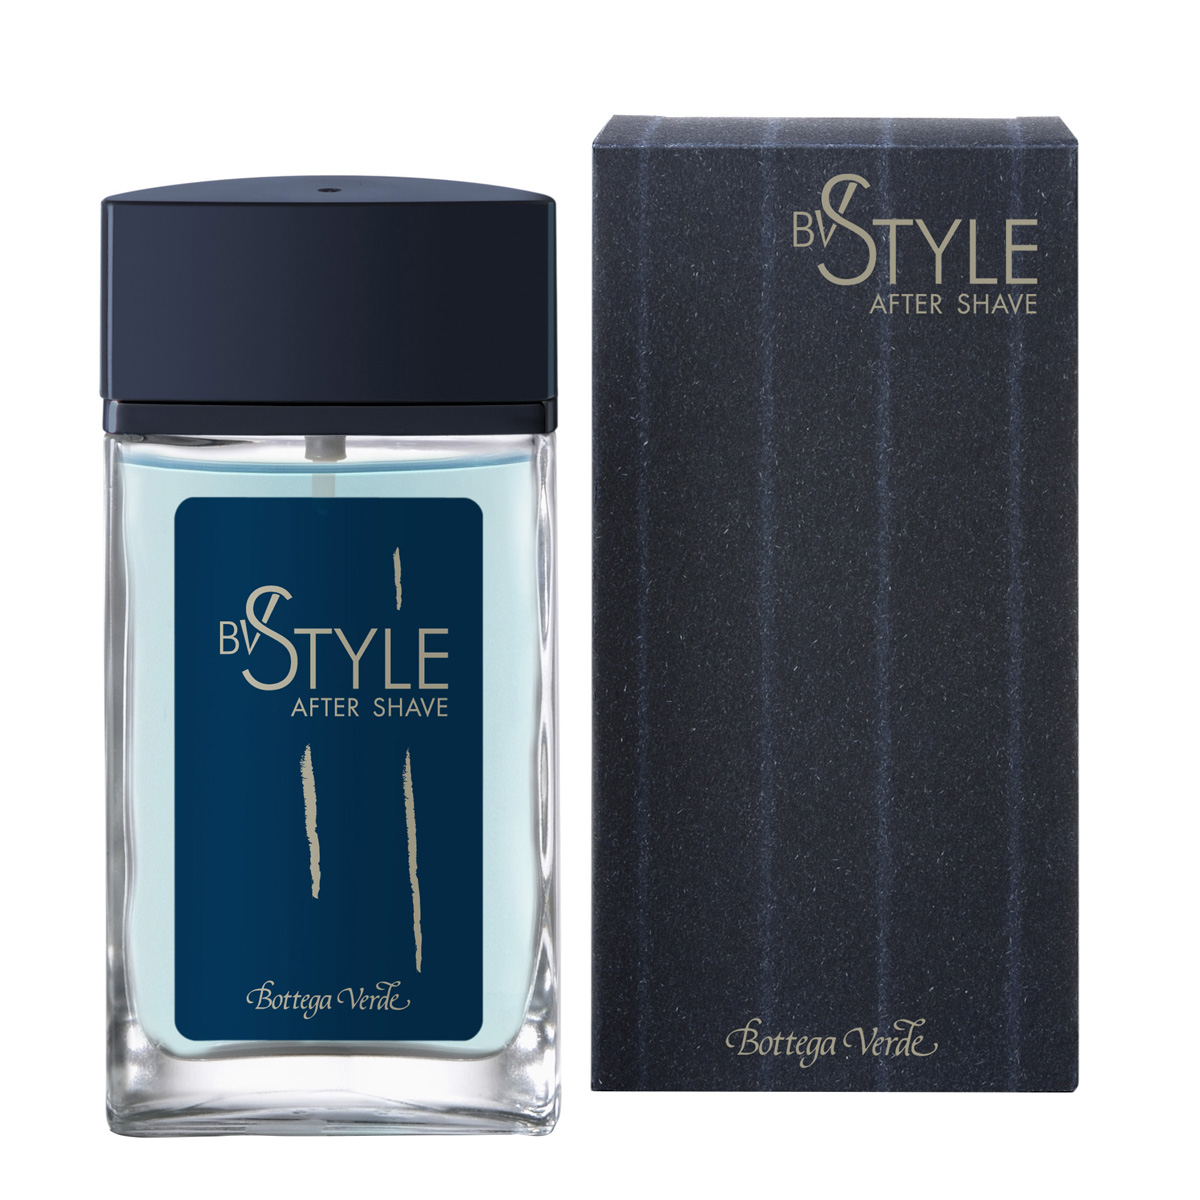 After shave - BV Style, 50 ML